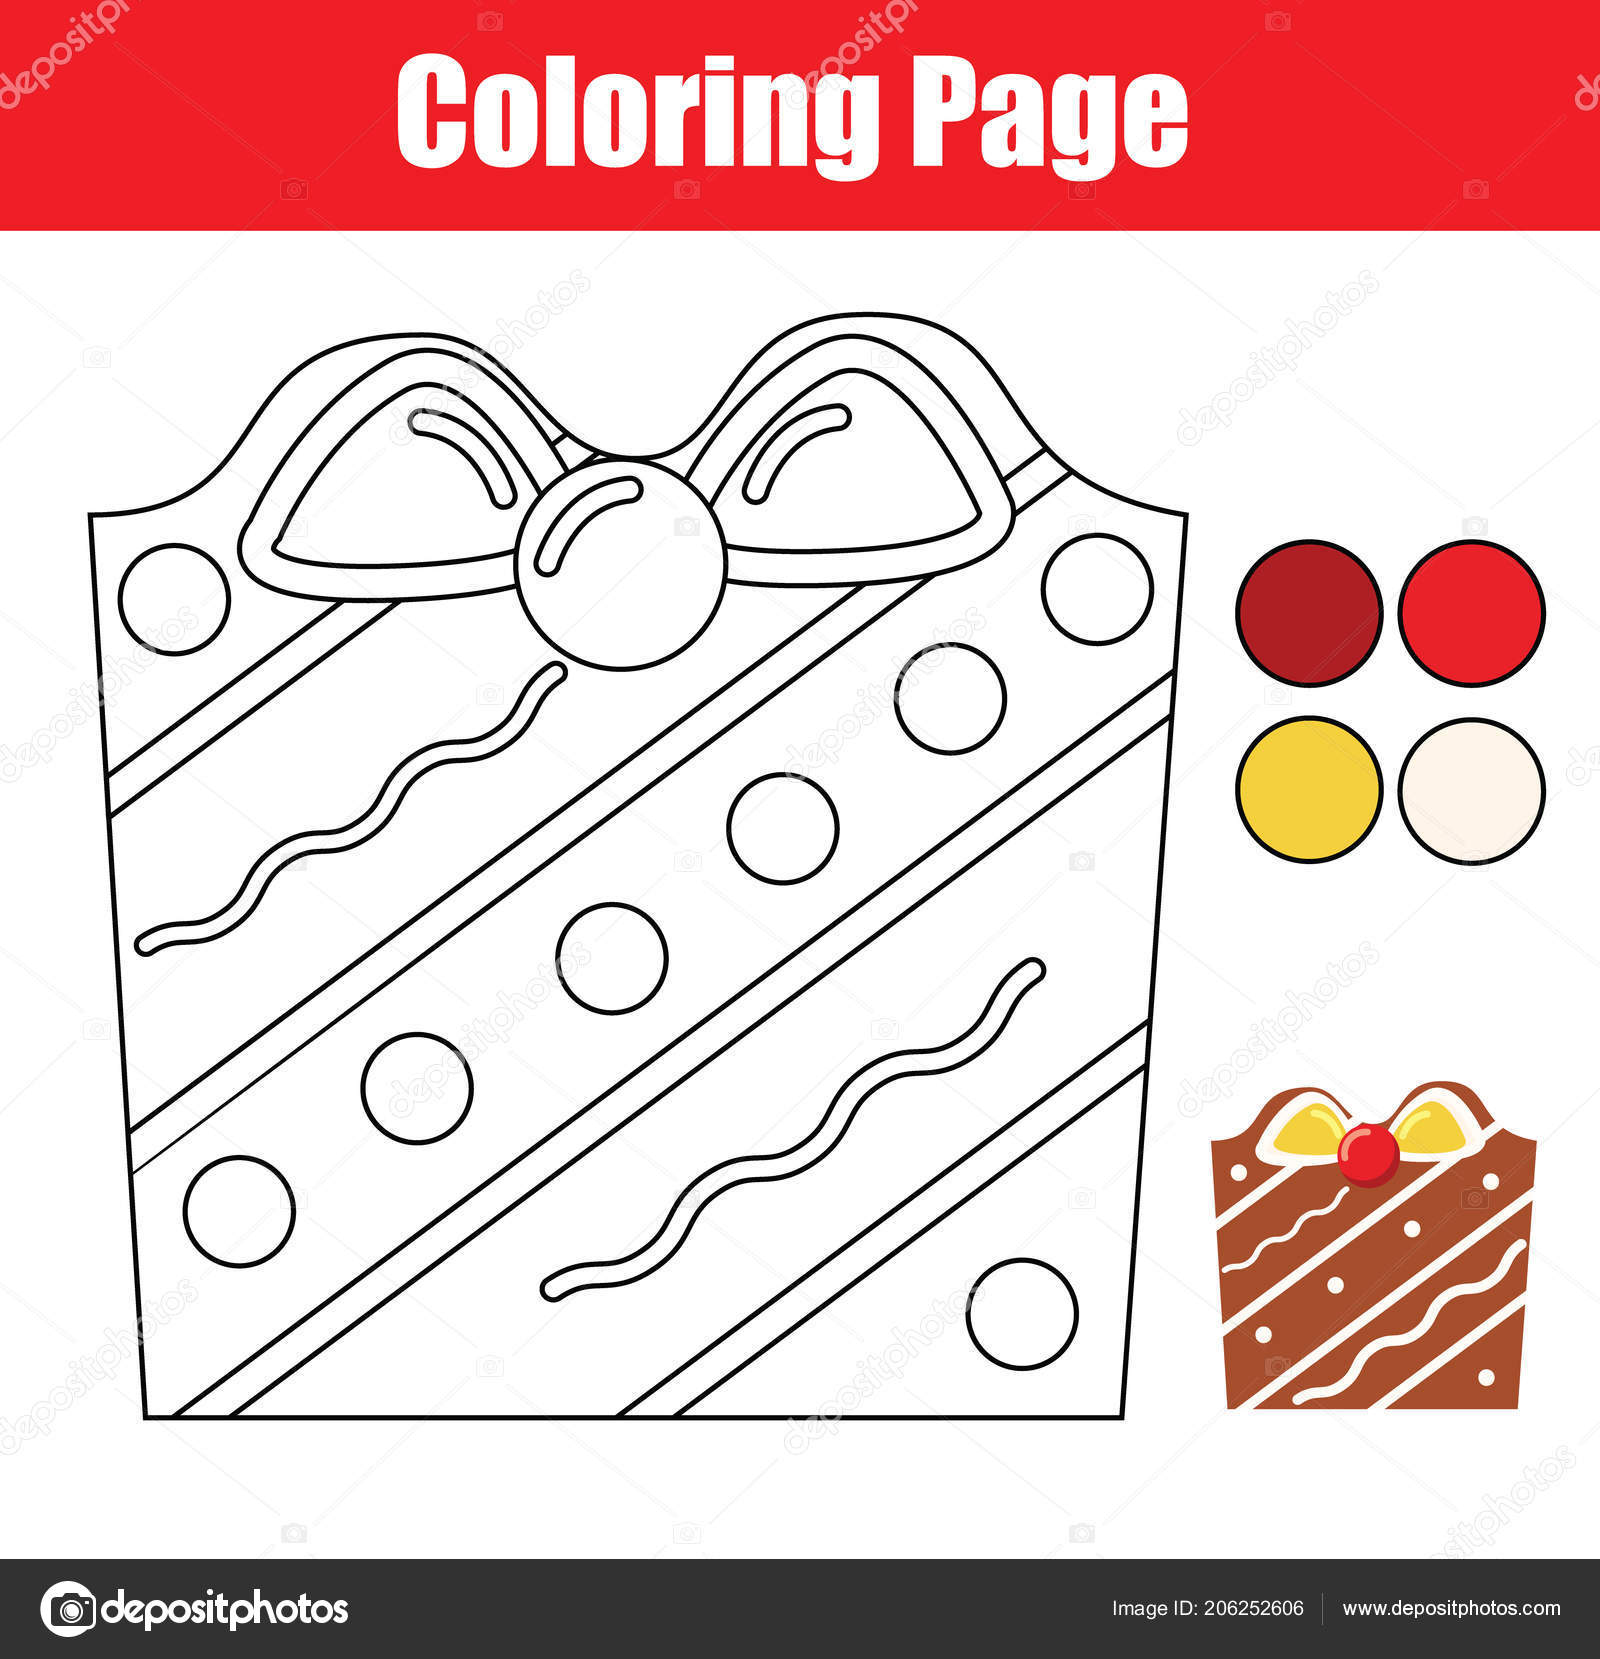 Coloring Page Educational Children Game Color Christmas Cookie